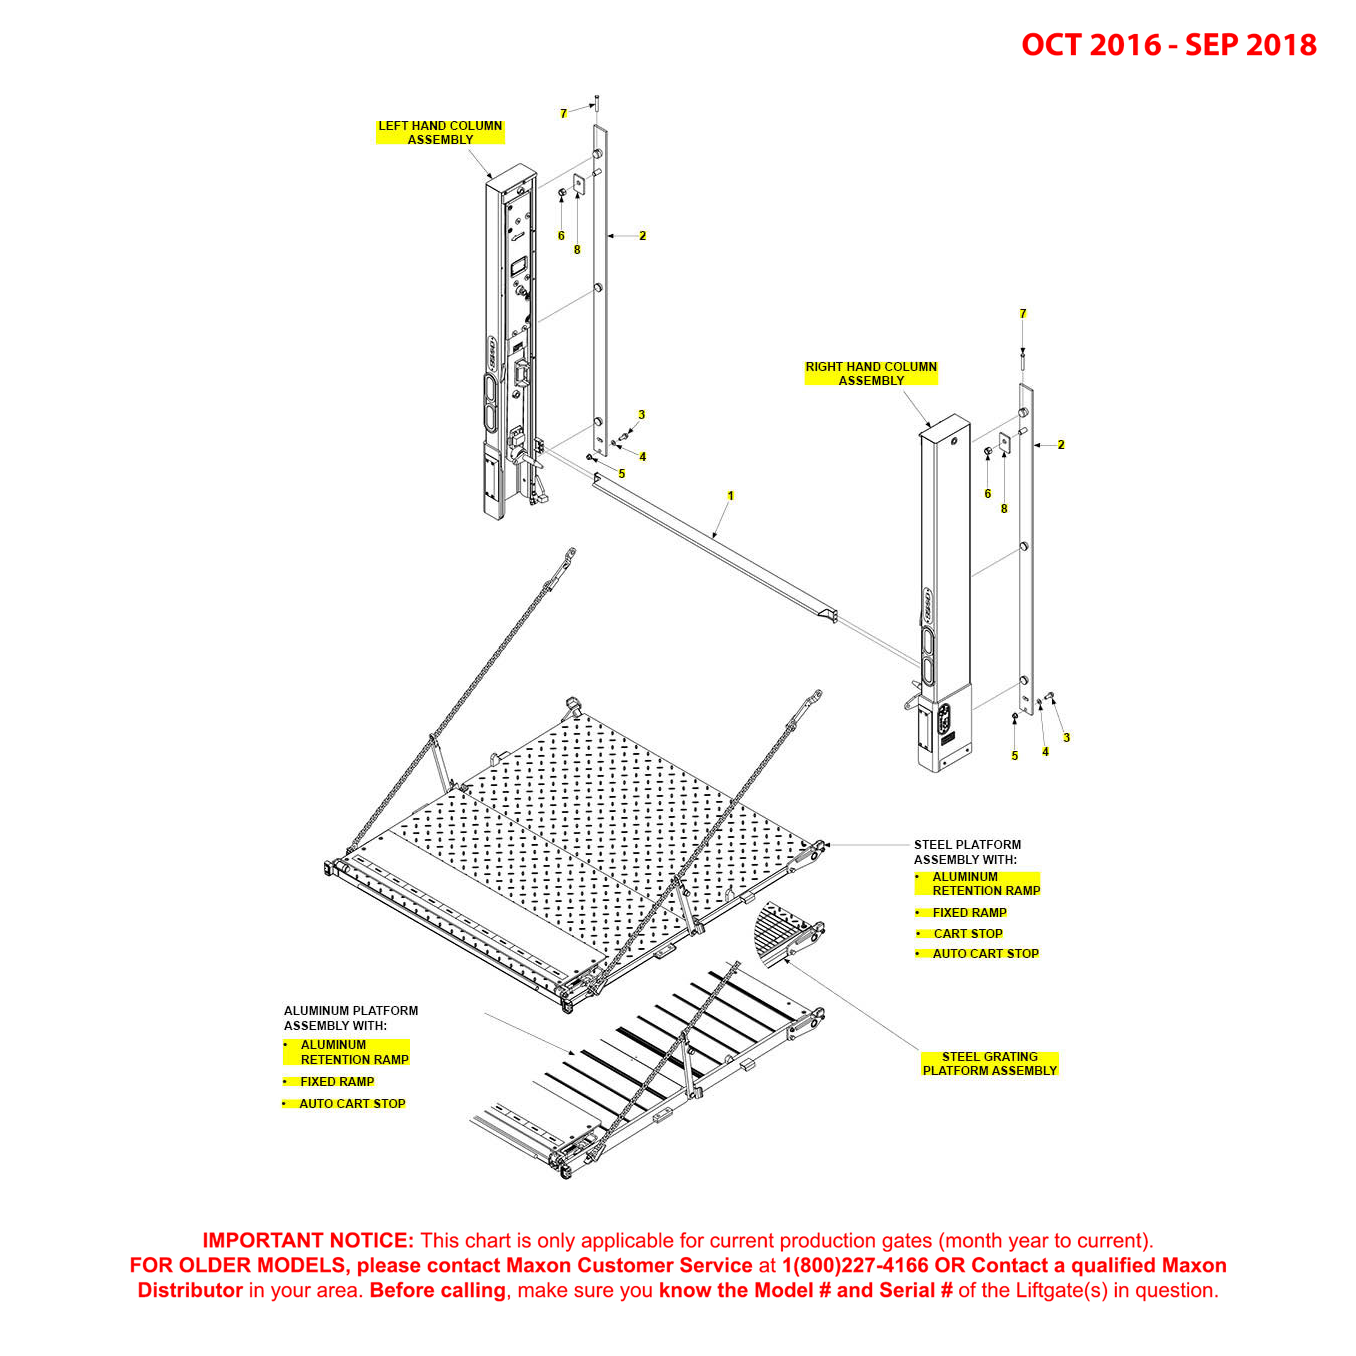 BMR (Oct 2016 - Sep 2018) Final Assembly Diagram